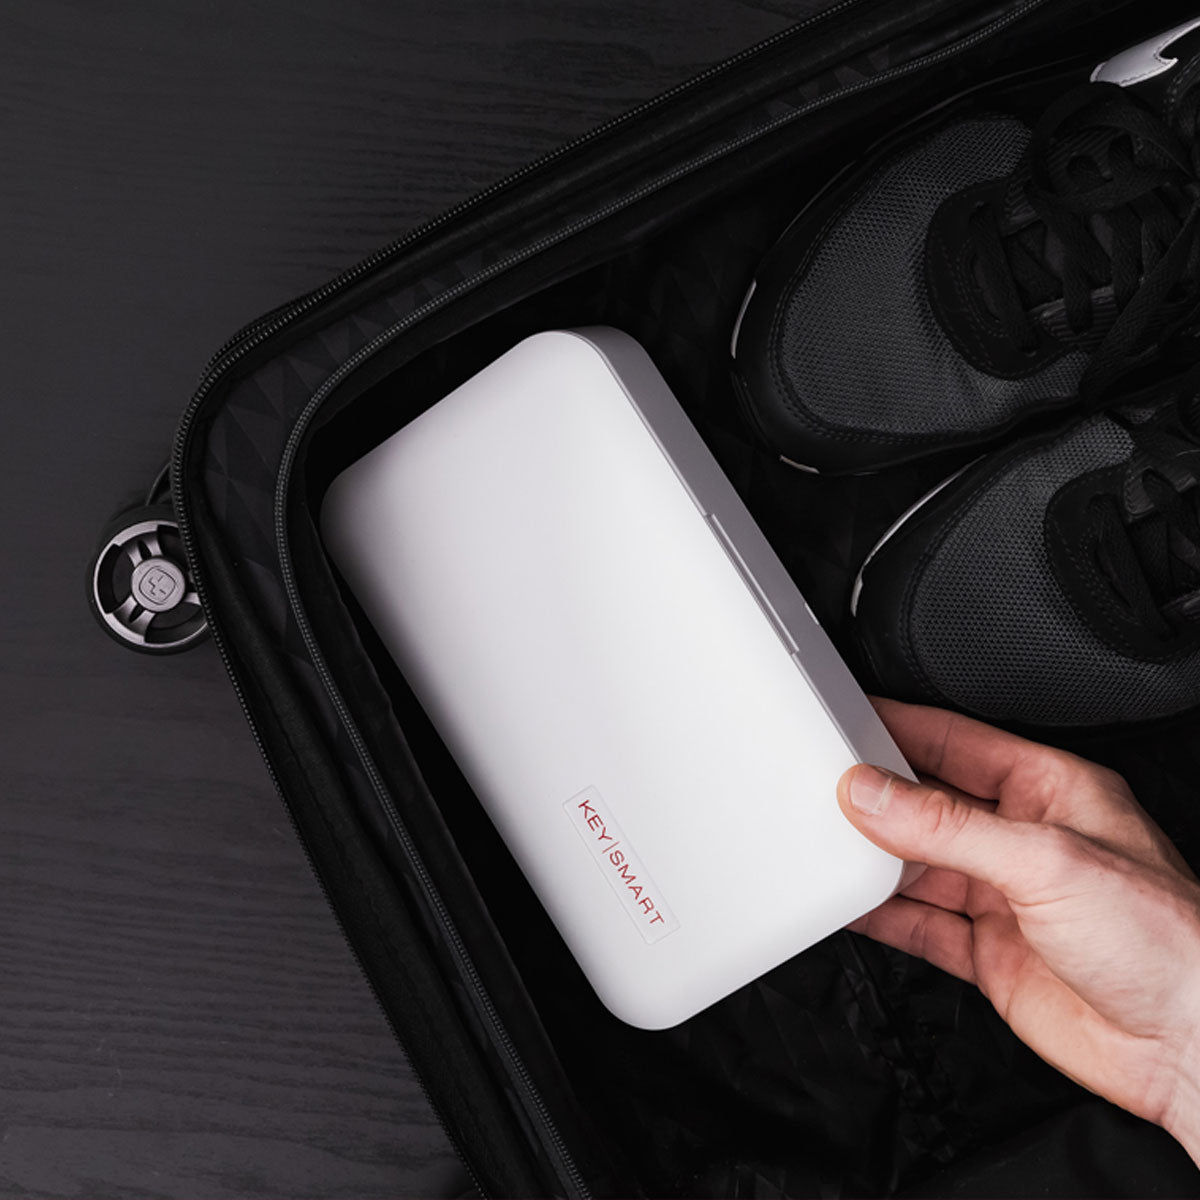 Portable & lightweight - great for business travel and sterilizing at hotels and airports